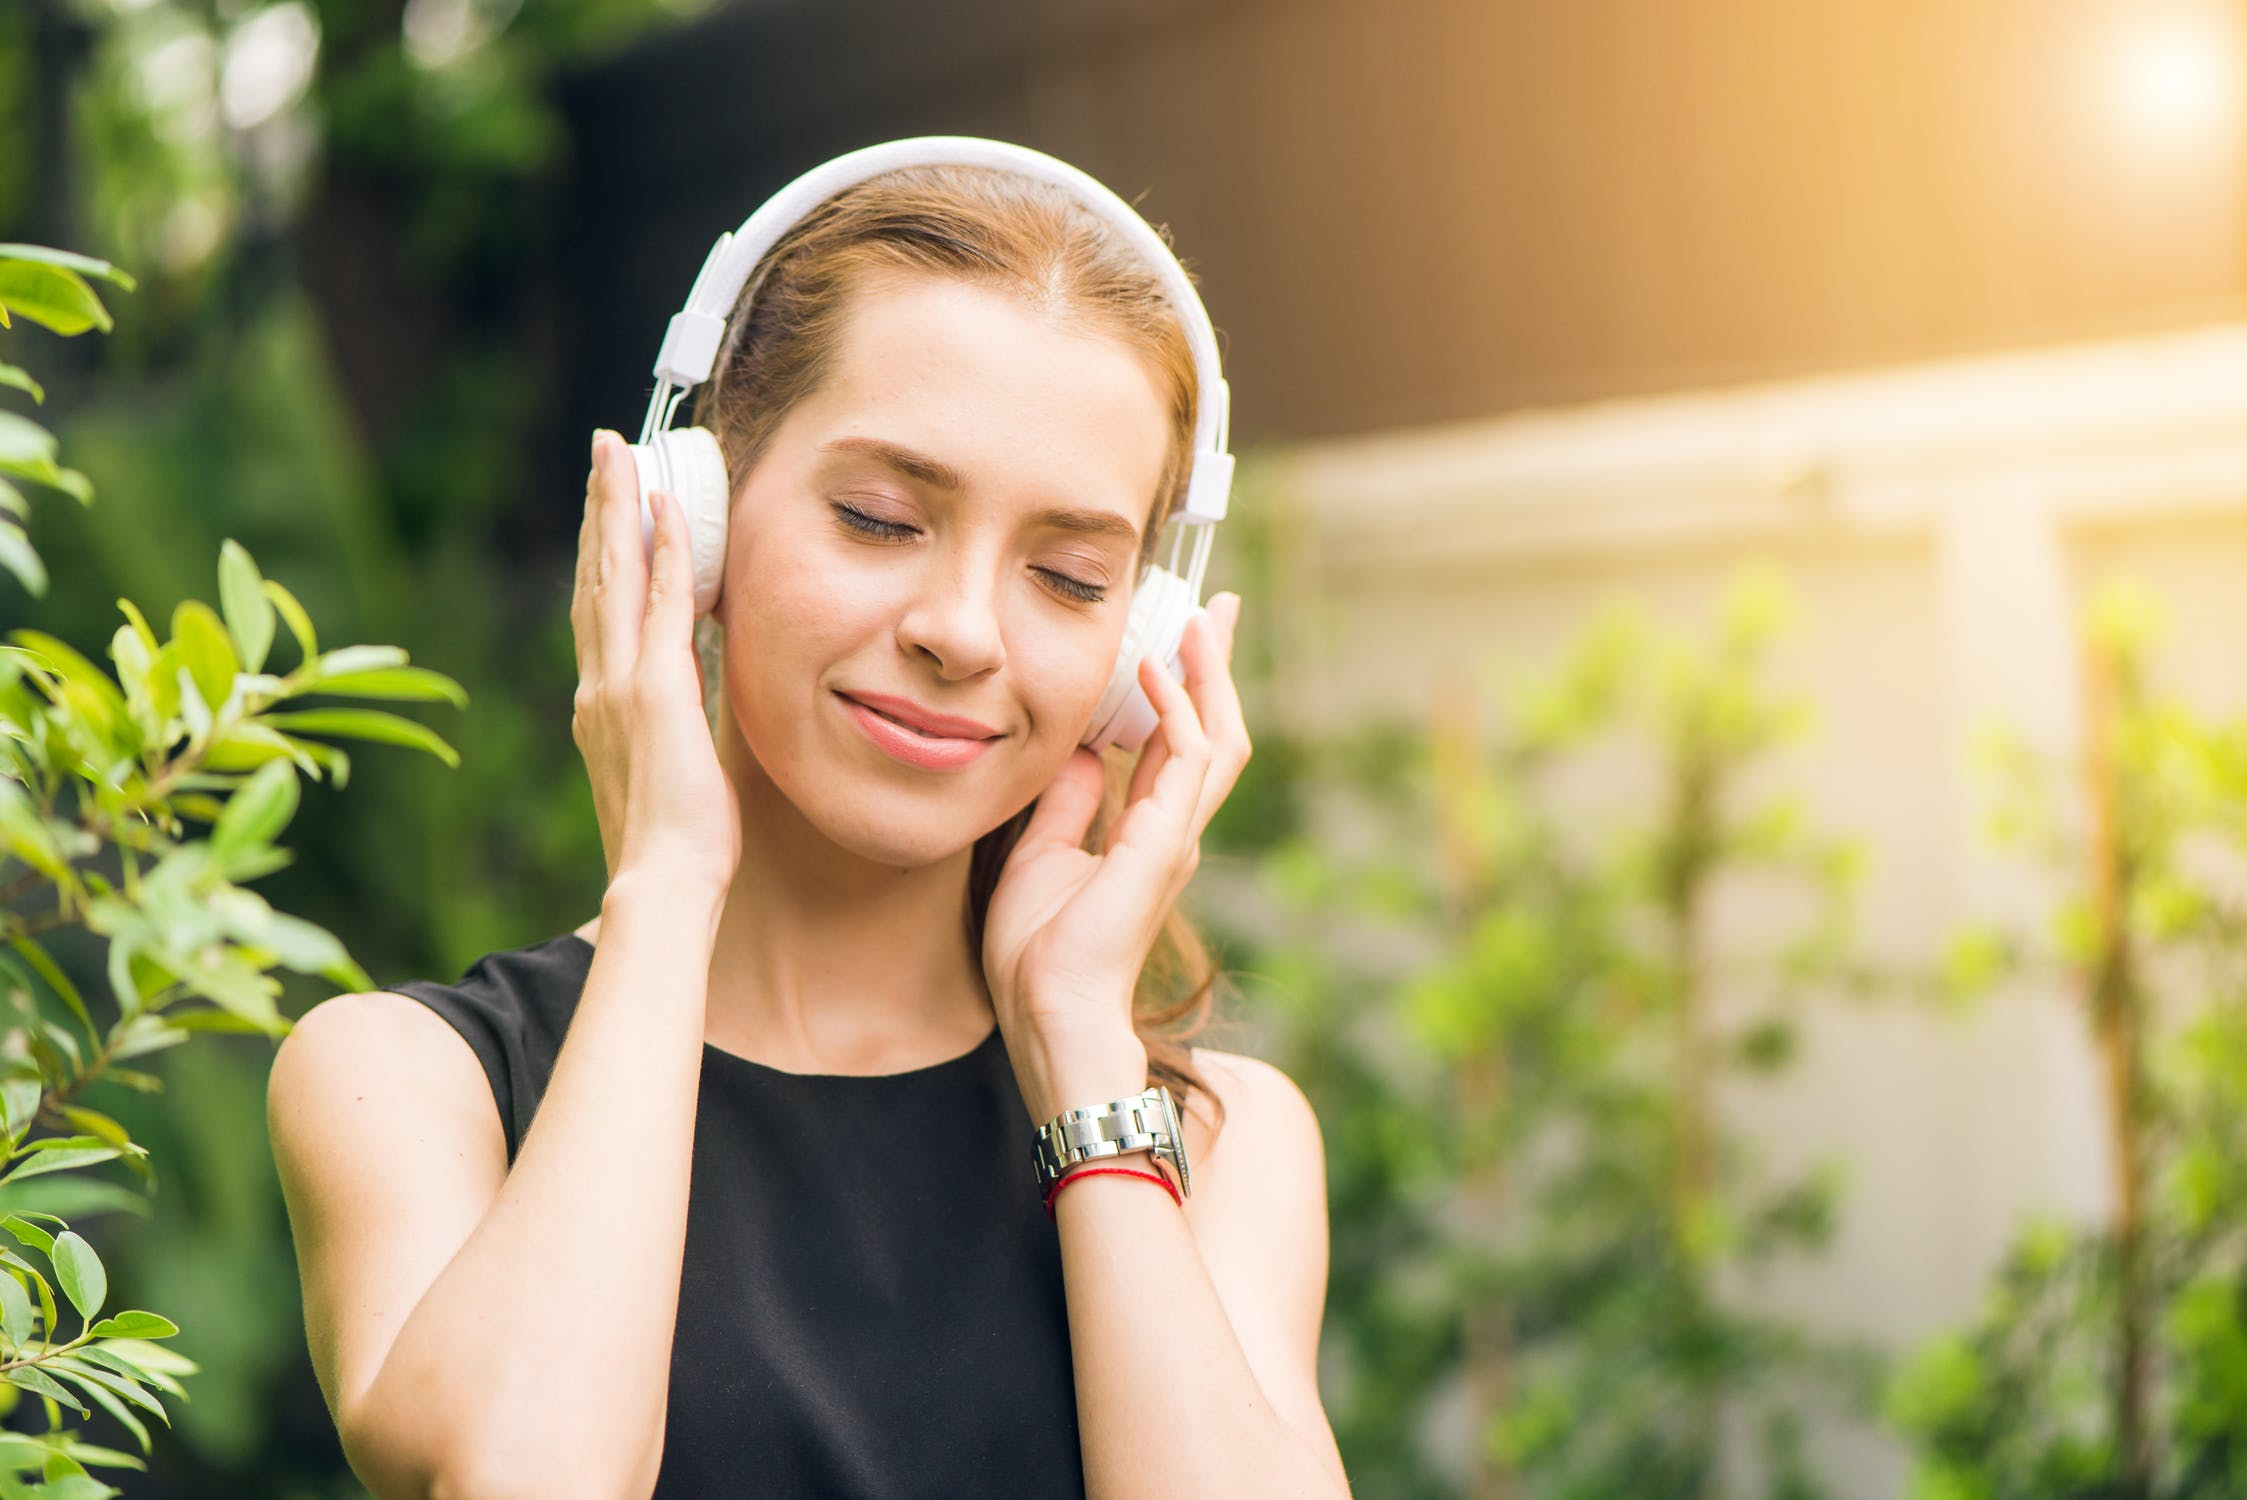 Top 3 Ways to Protect Your Ears & Hearing